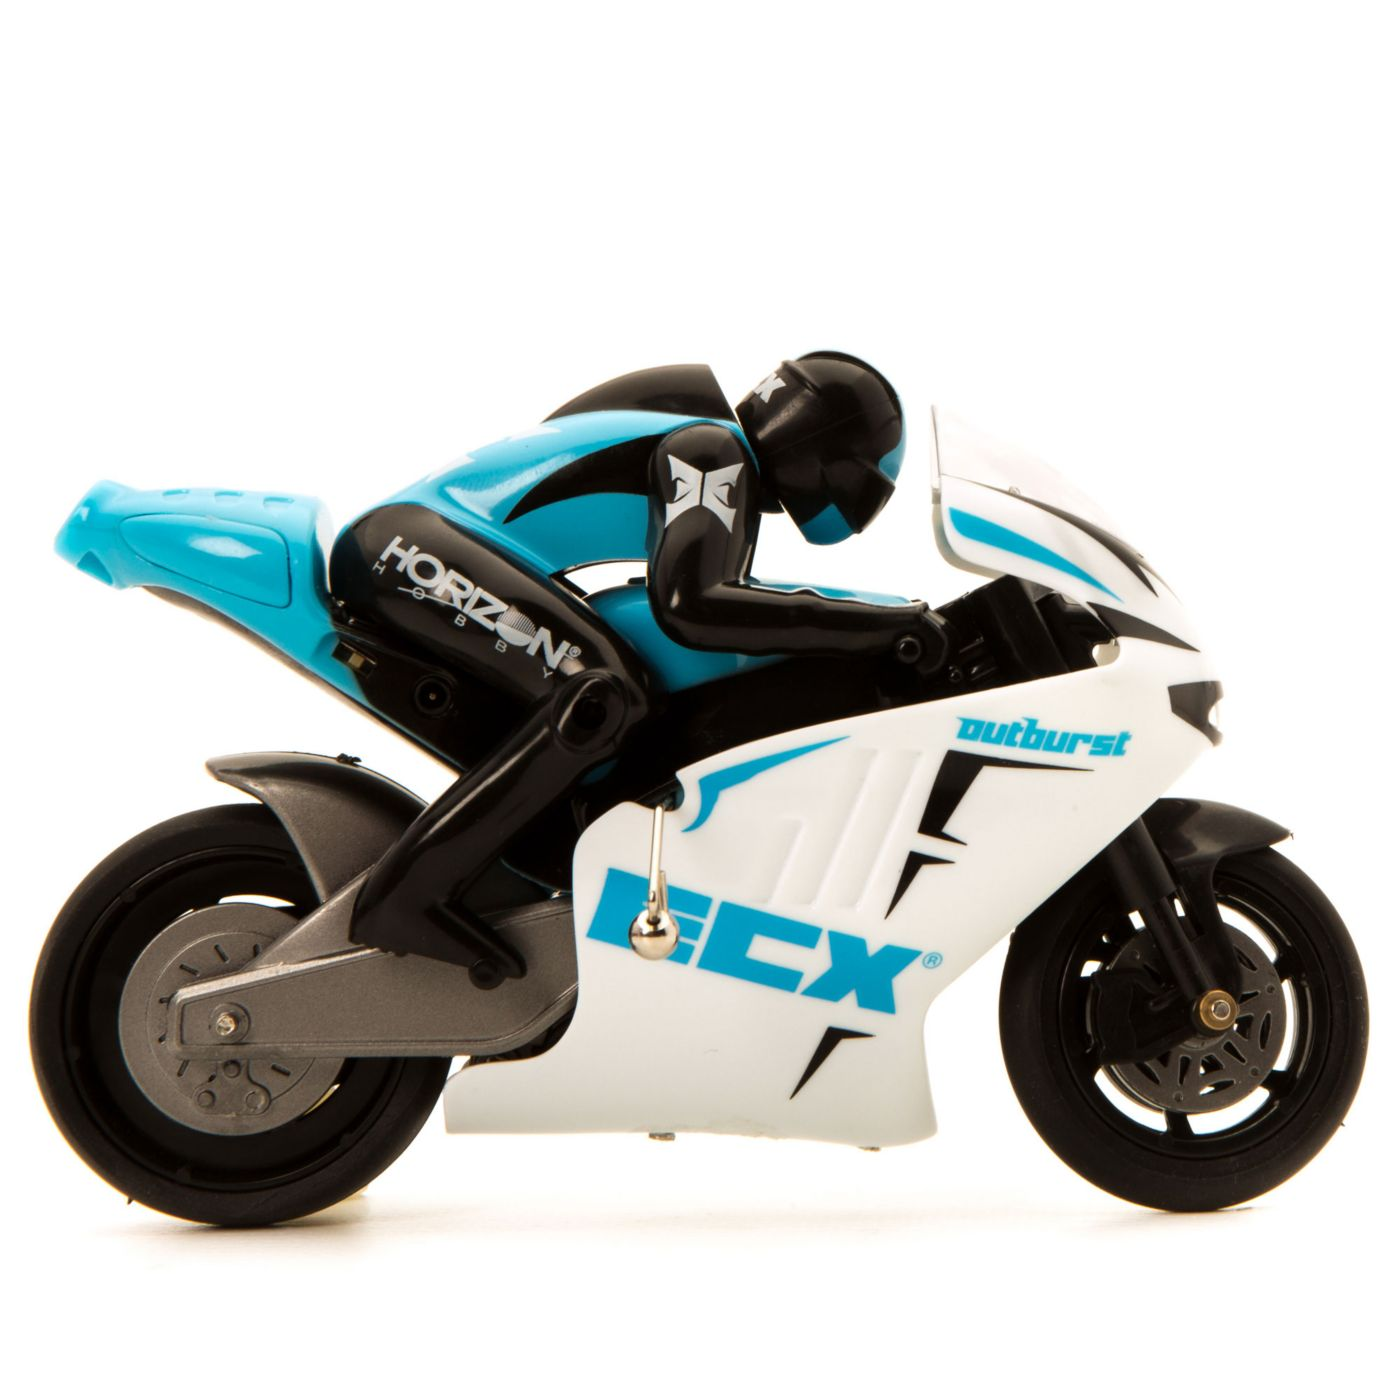 ECX Outburst 1:14 Motorcycle: RTR Blue - SNHE